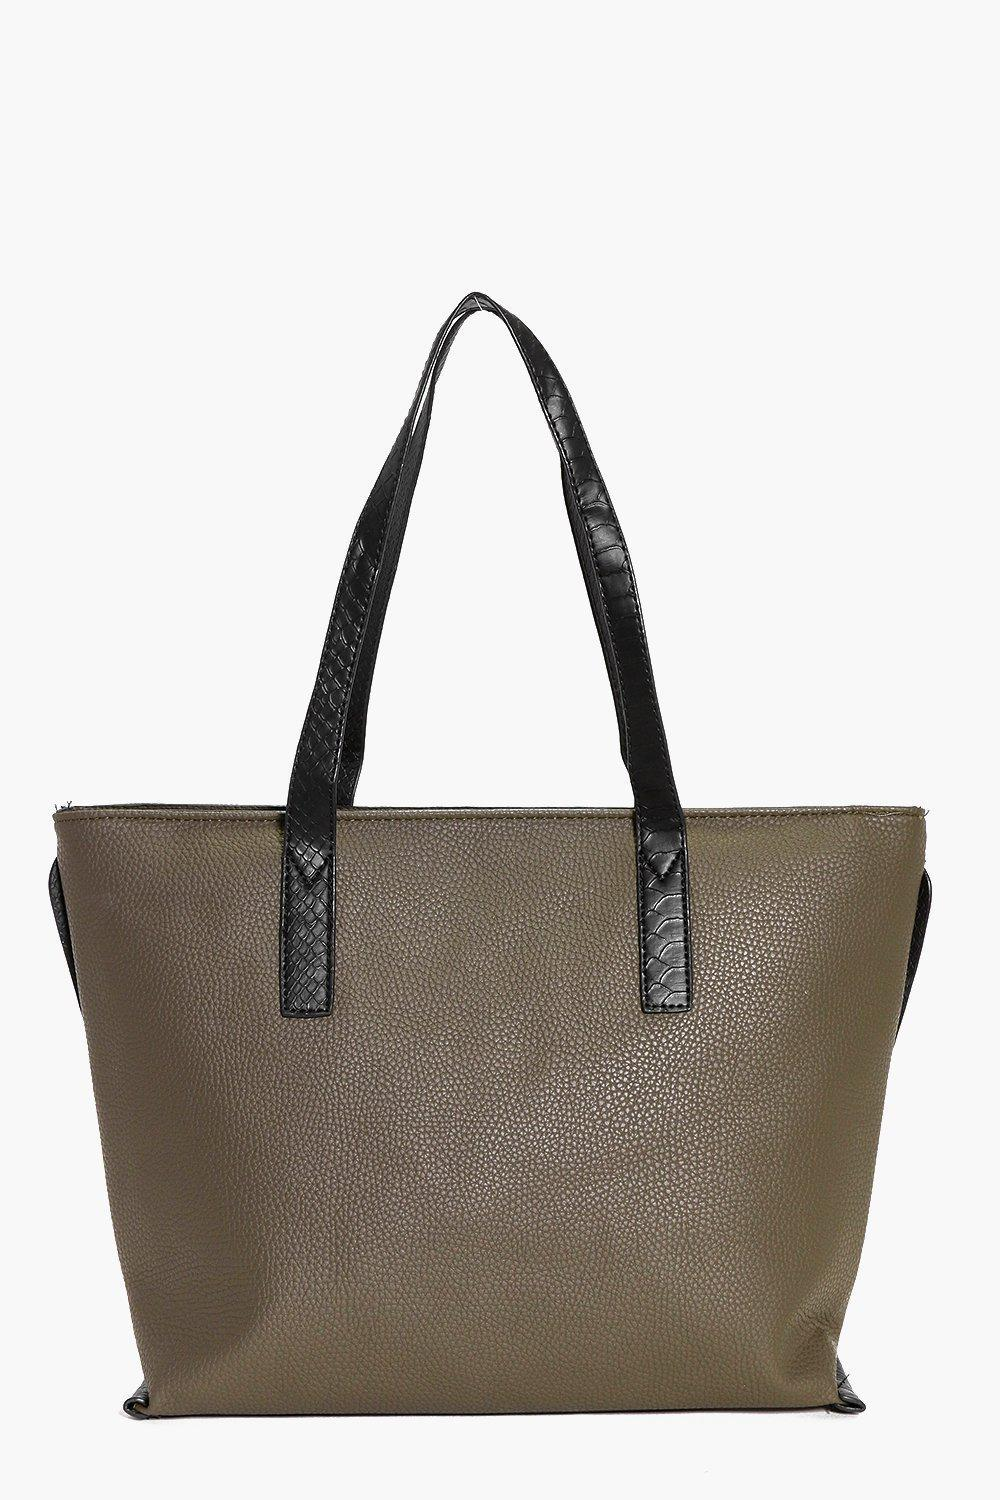 Contrast Handle Shopper Day Bag Khaki - predominant colour: khaki; secondary colour: black; occasions: casual, creative work; type of pattern: standard; style: tote; length: handle; size: oversized; material: faux leather; pattern: plain; finish: plain; wardrobe: investment; season: a/w 2016